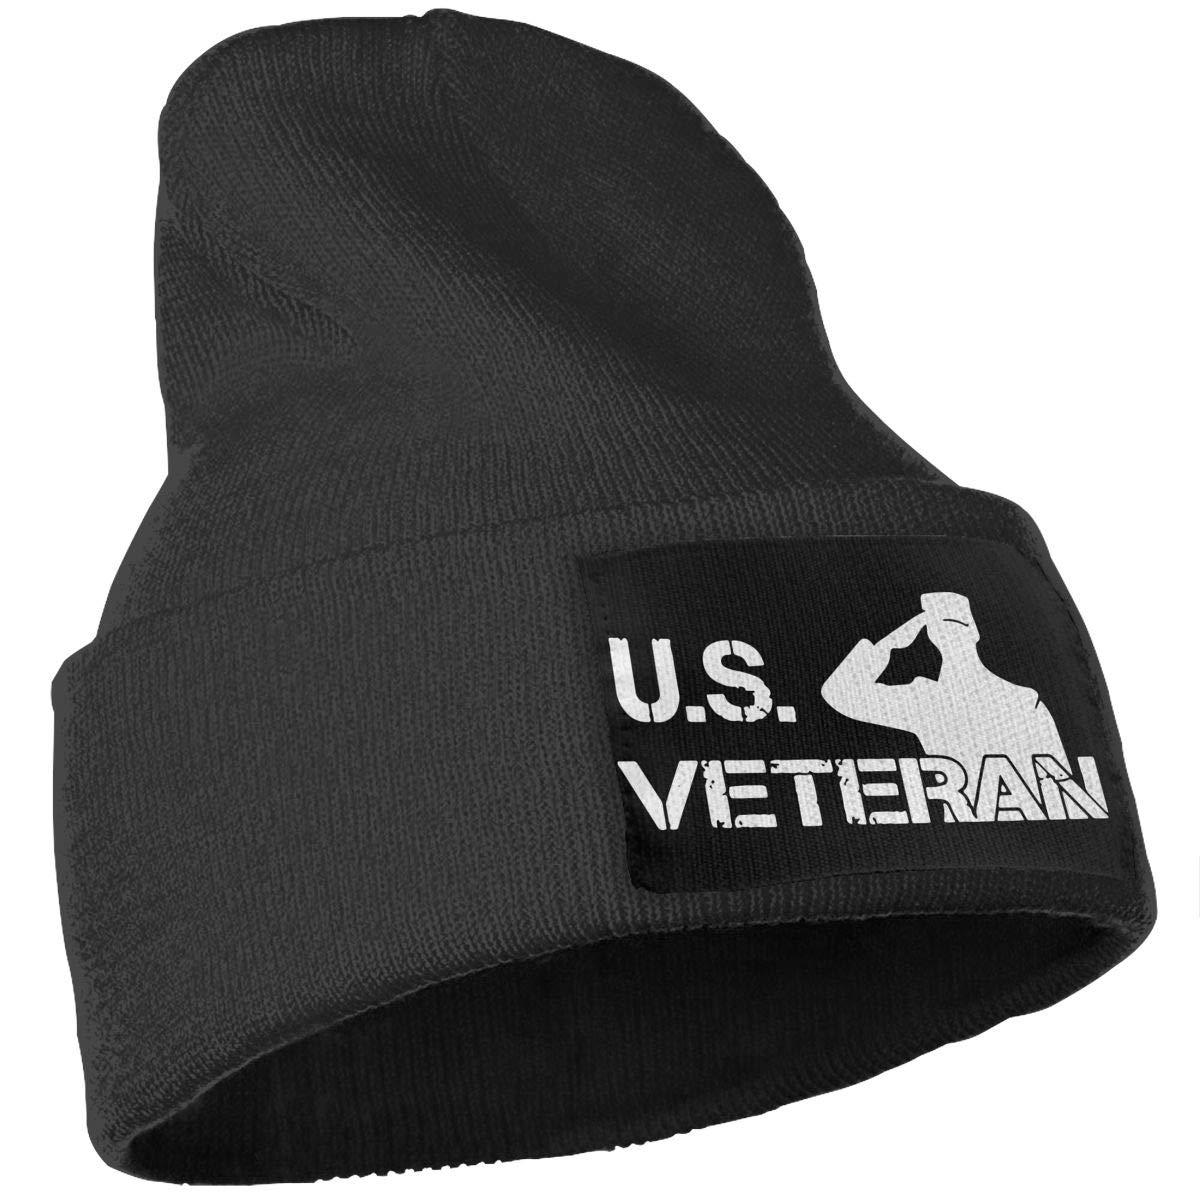 COLLJL-8 Unisex Veterans Day Outdoor Fashion Knit Beanies Hat Soft Winter Skull Caps